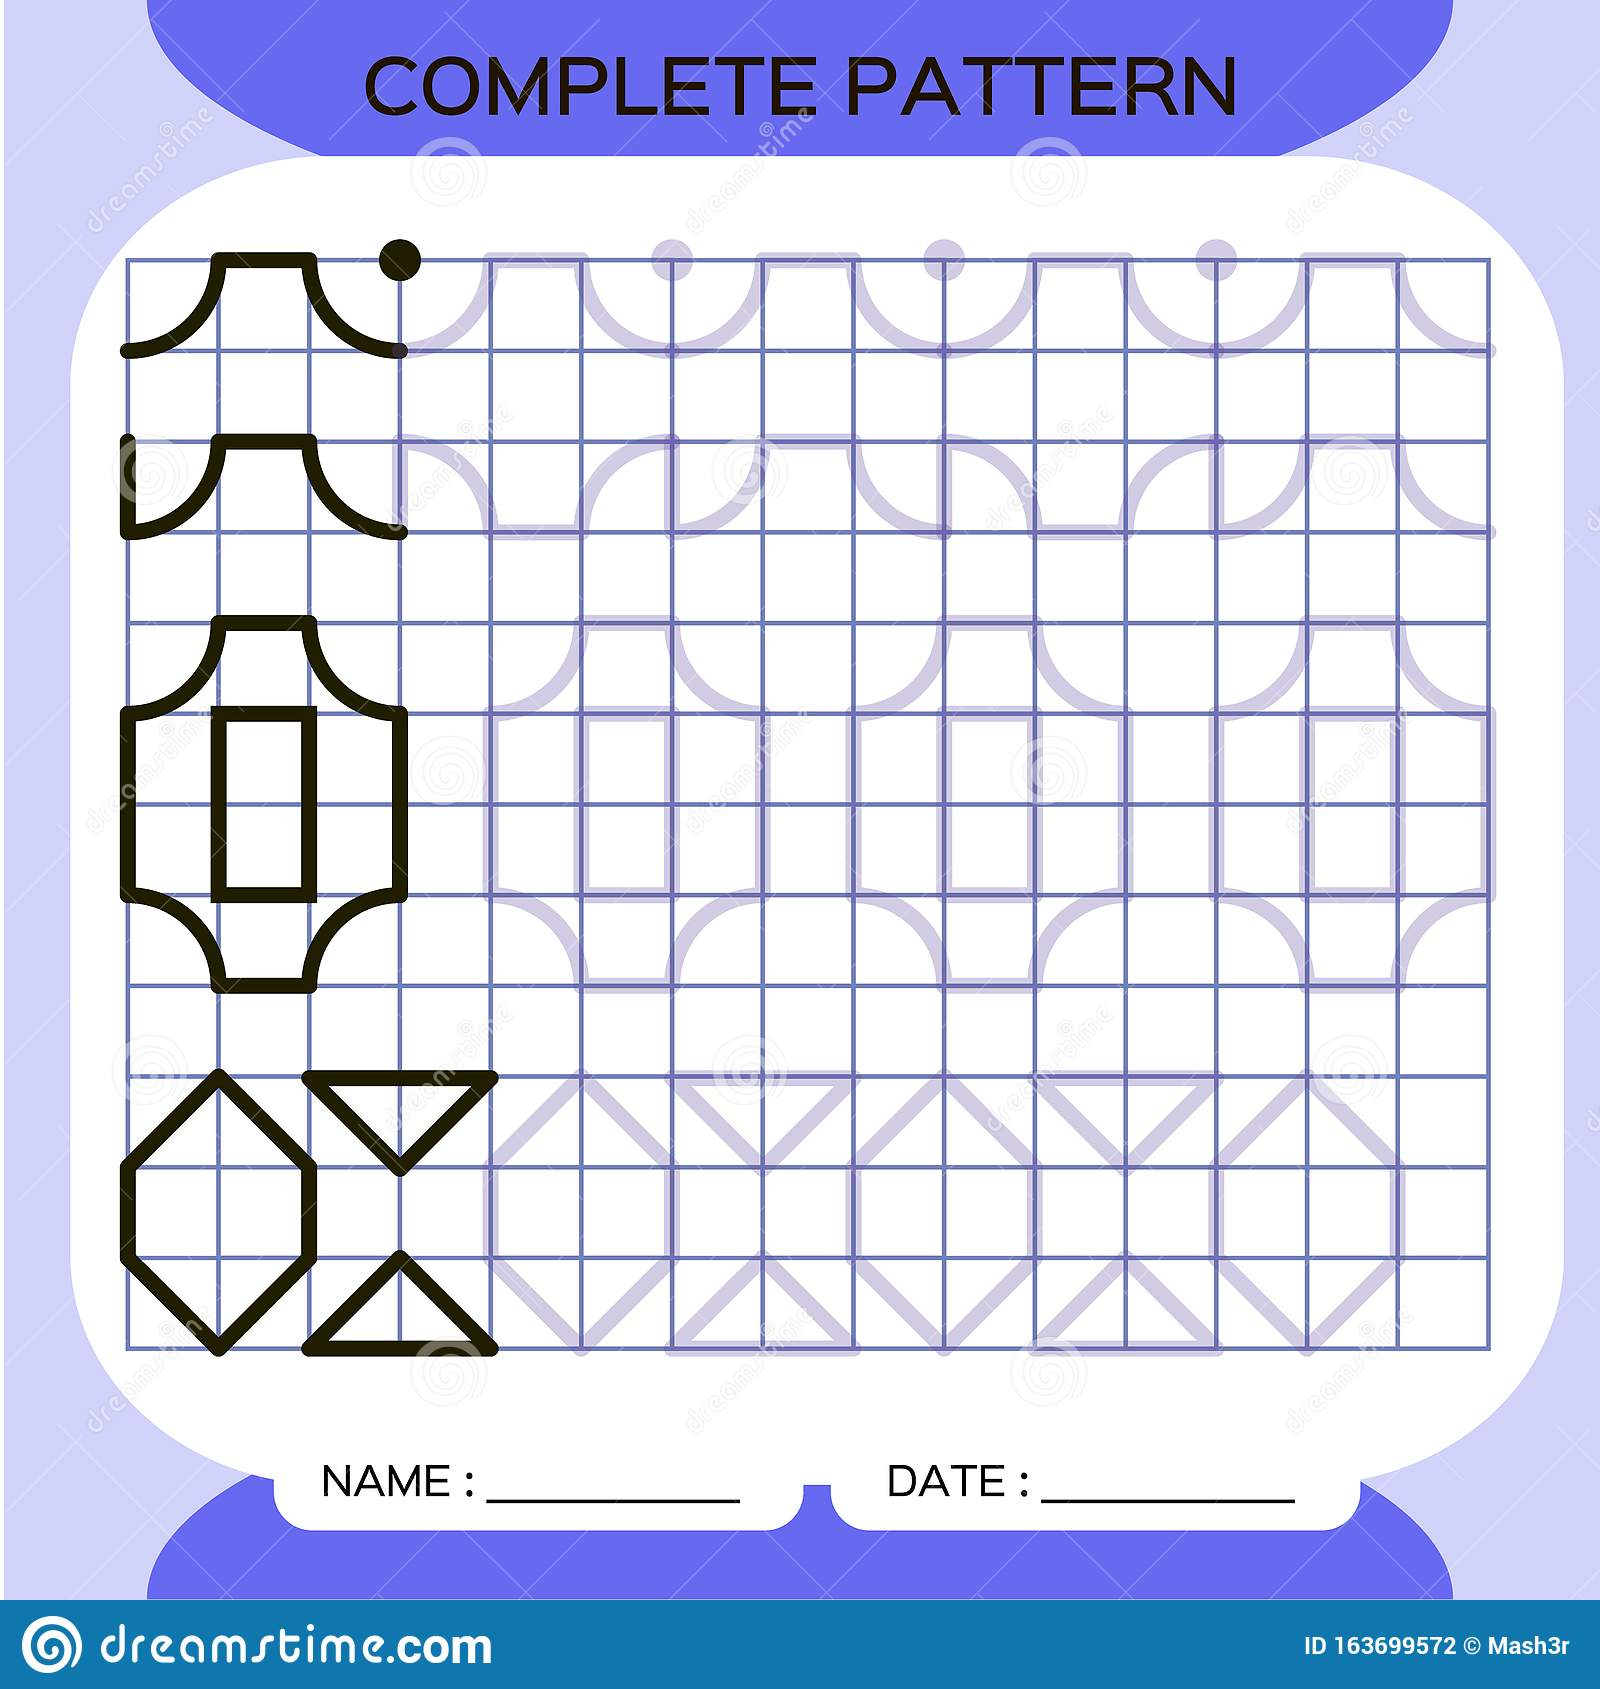 Complete Pattern Tracing Lines Activity For Early Years